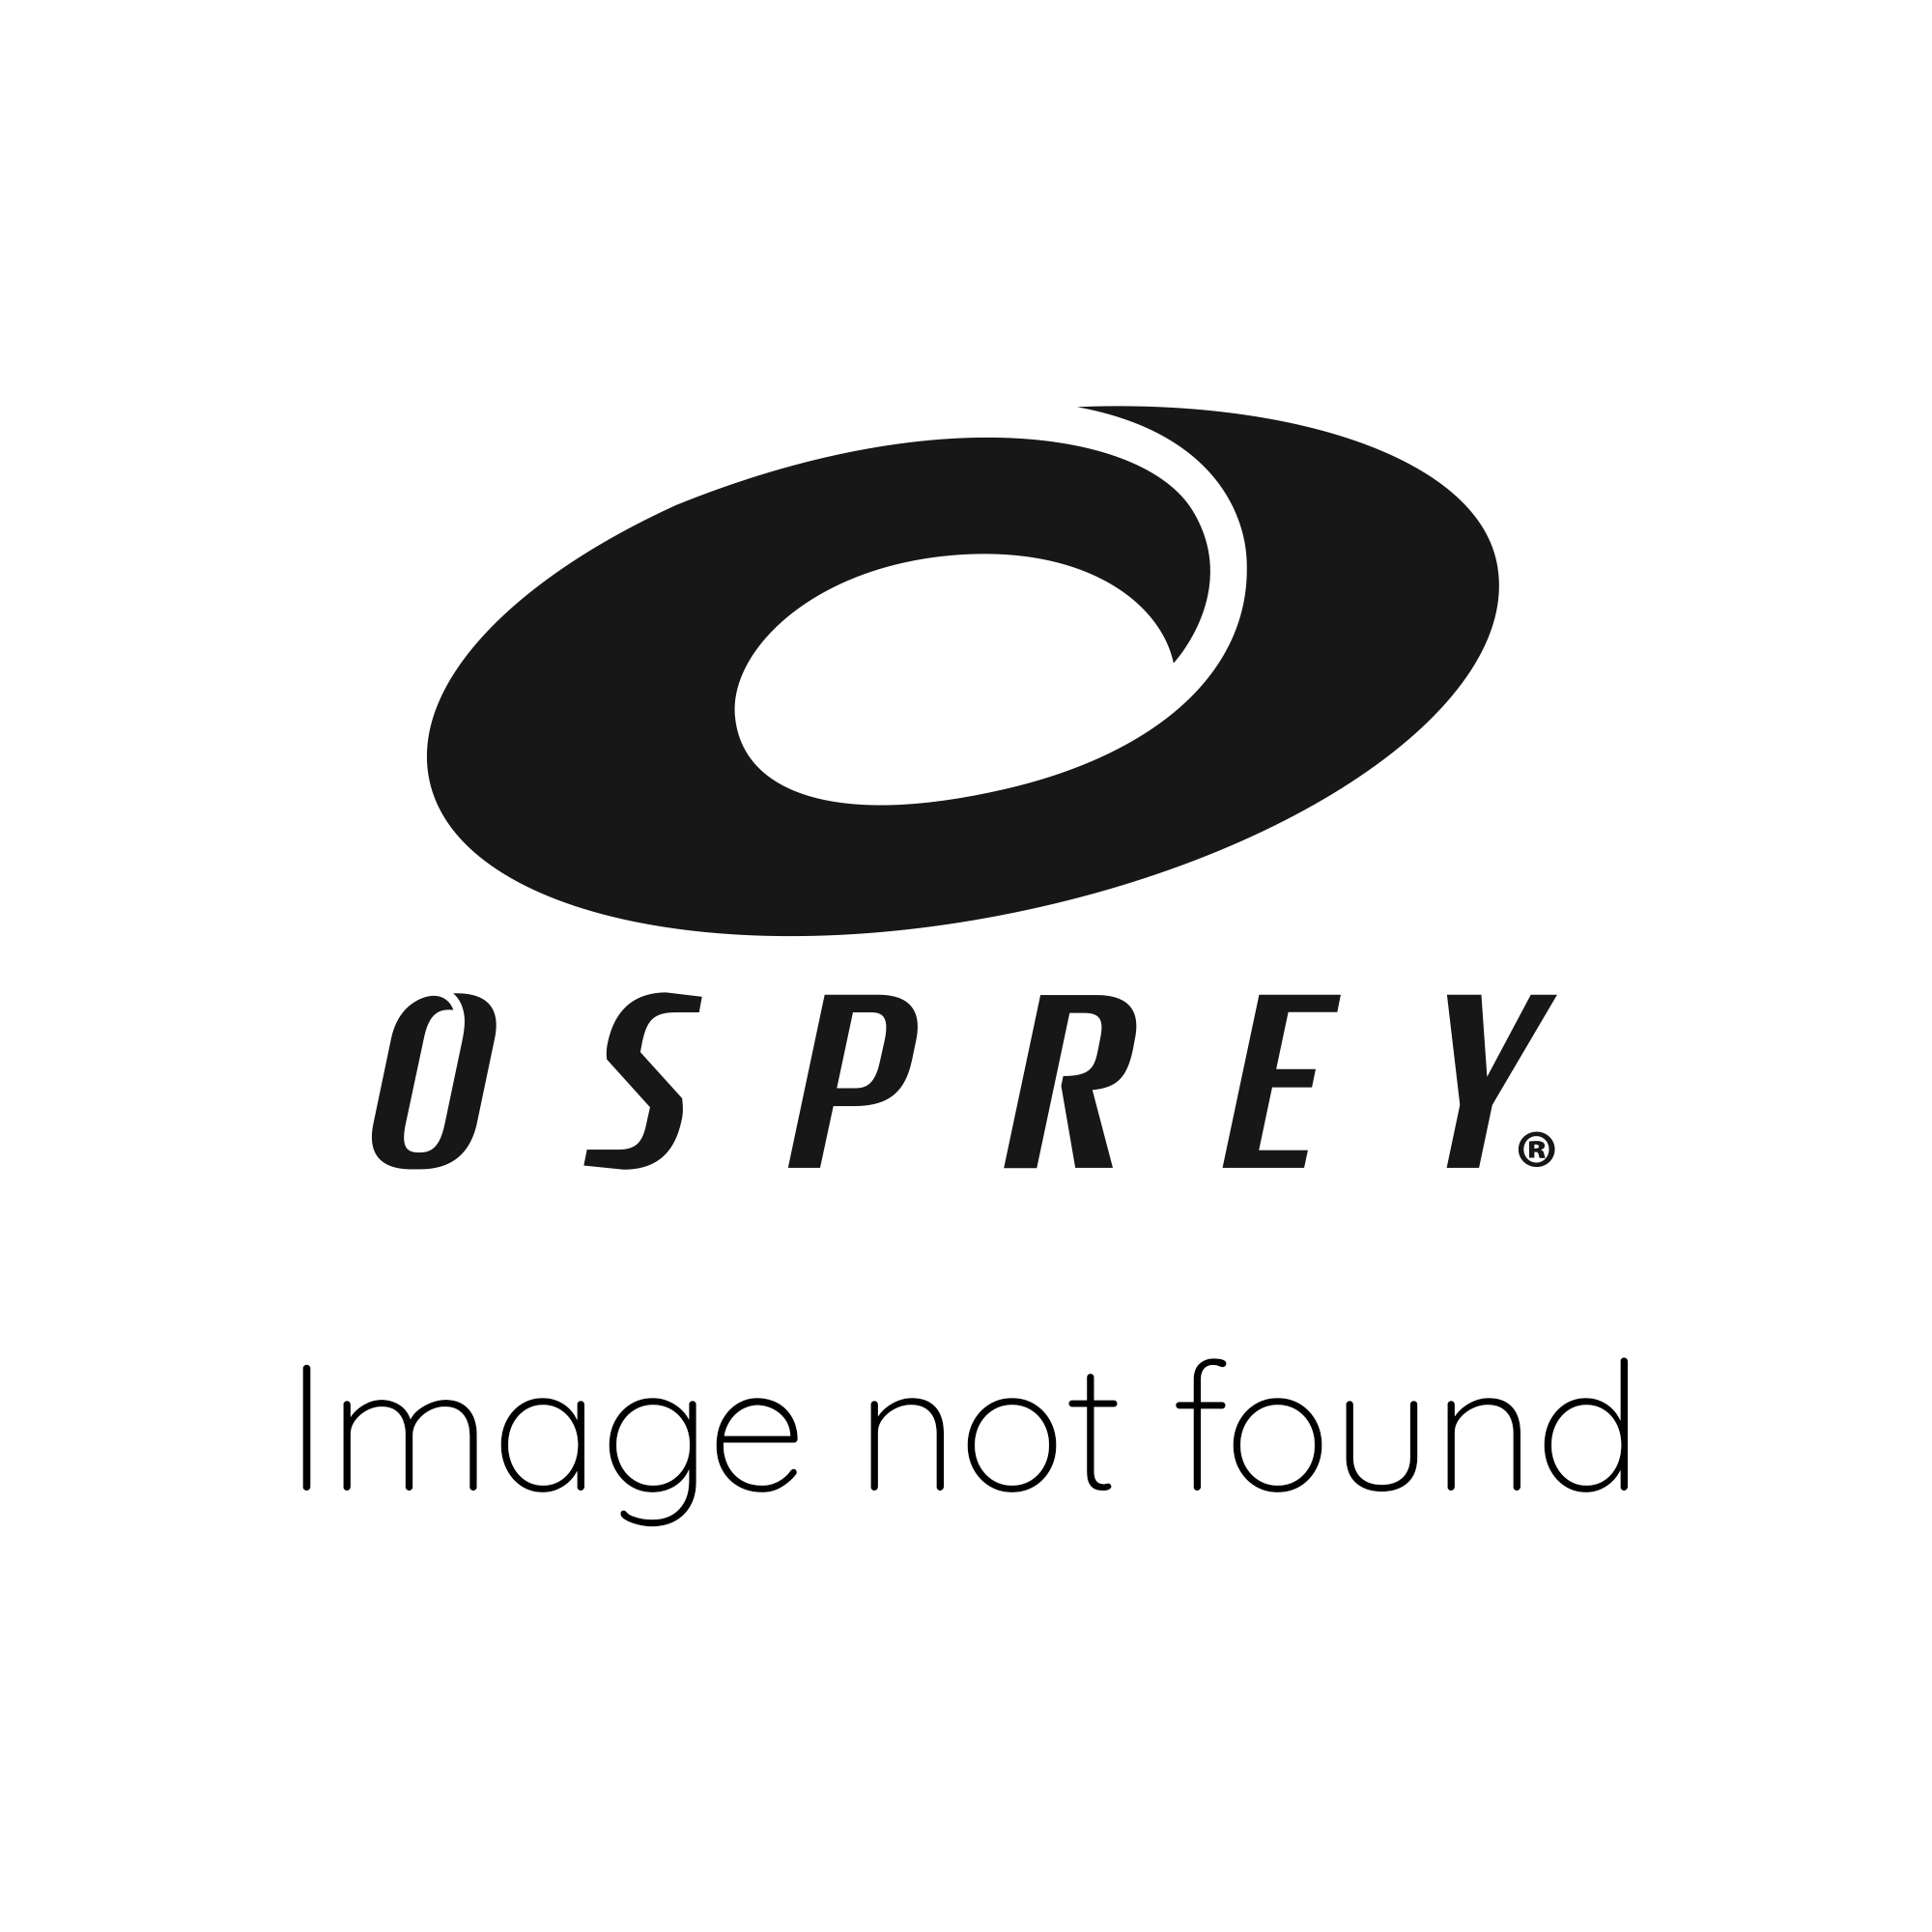 Osprey Womens 3mm Origin Shorty Wetsuit - Black